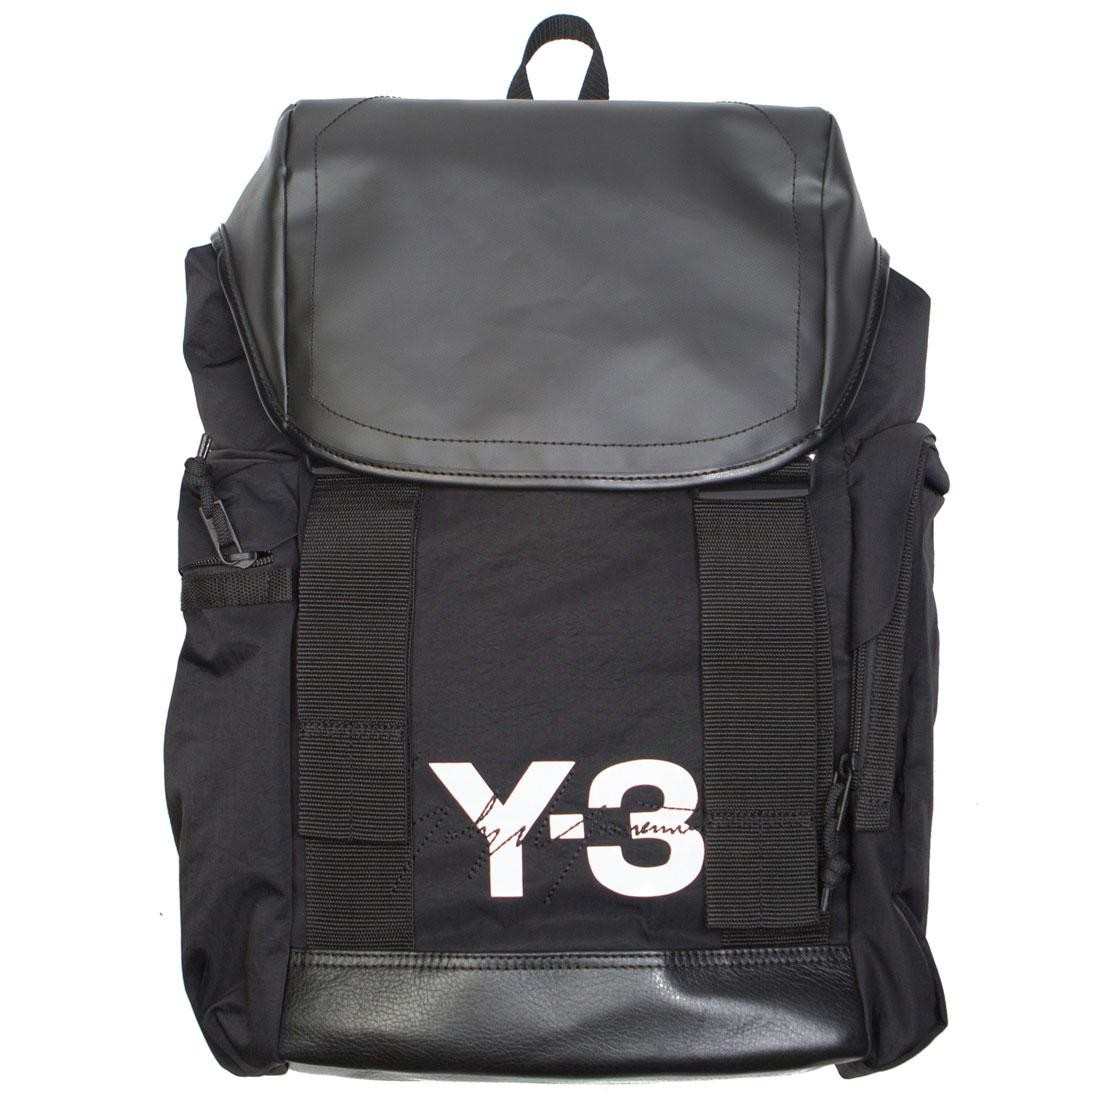 8bcb6db6b469 Adidas Y-3 Mobility Backpack black